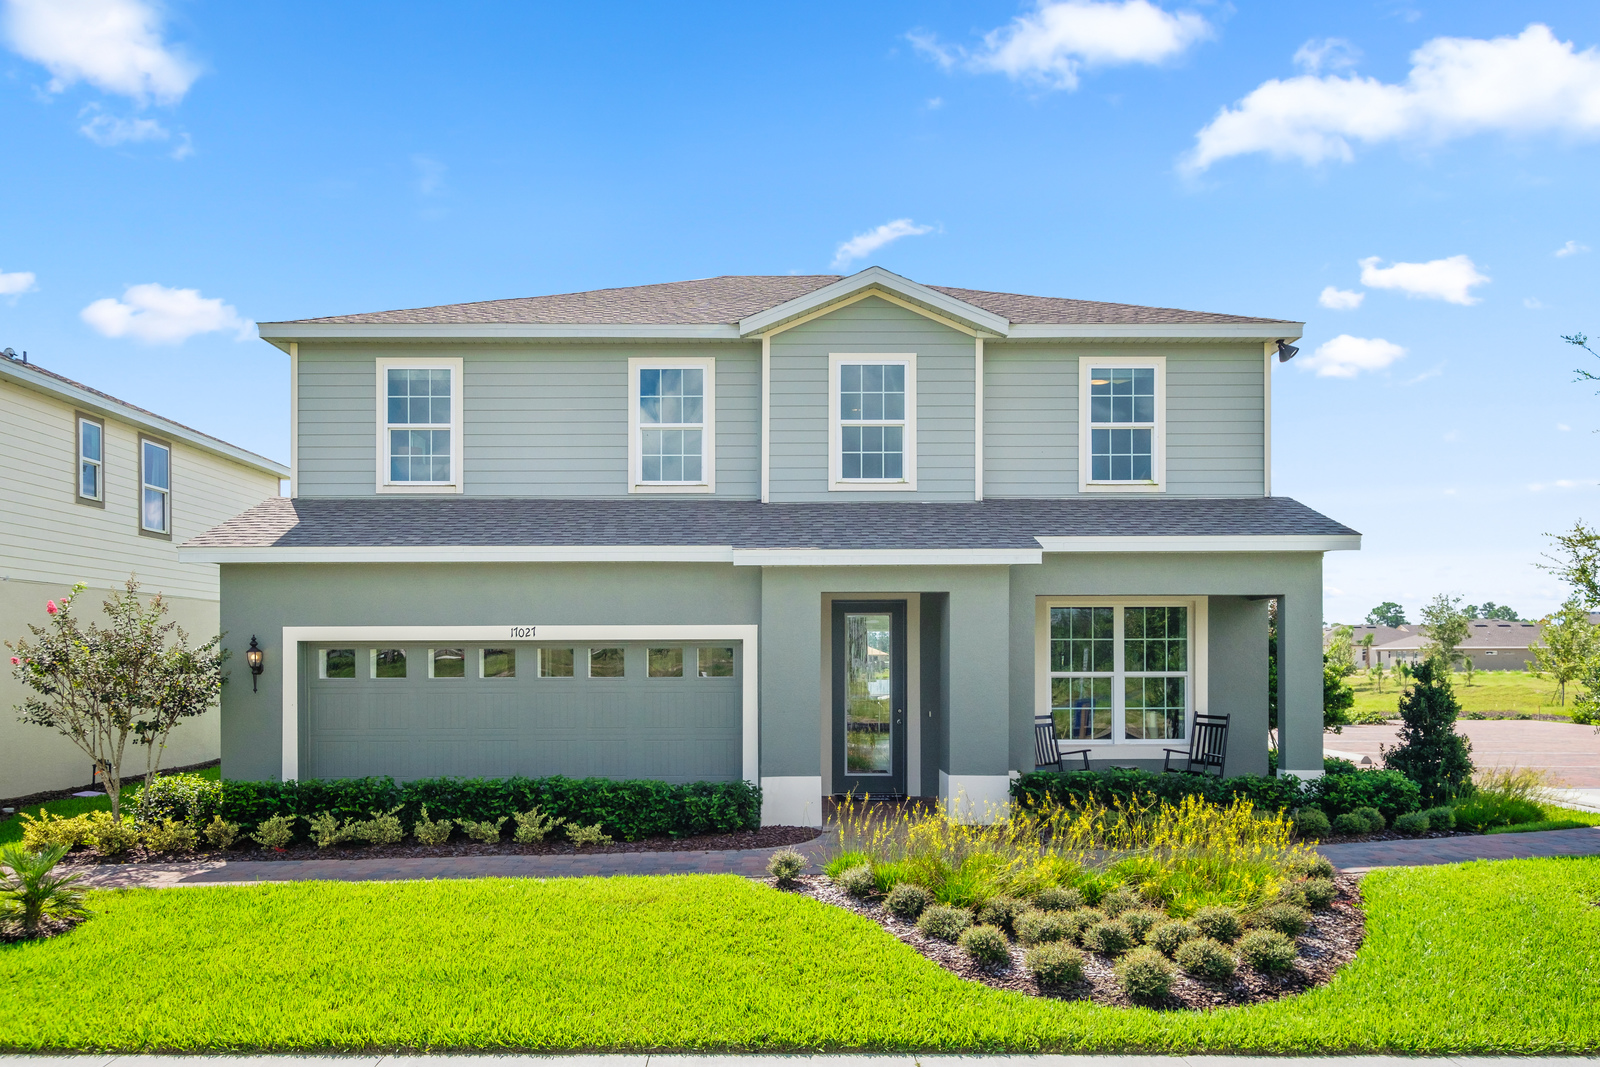 New homes for sale at shadow ridge in orange city fl - Model homes near me ...